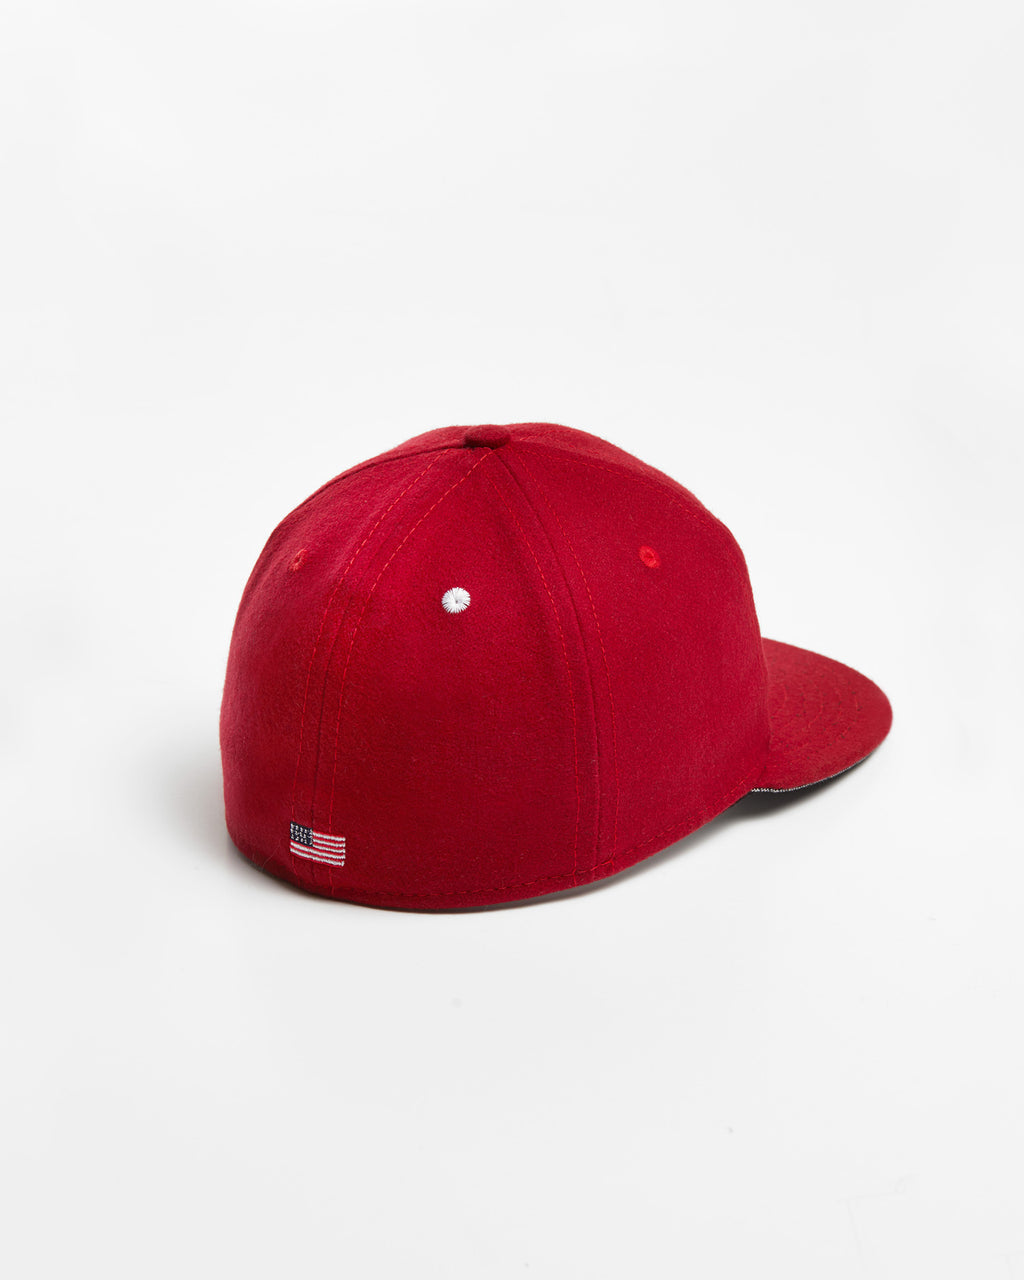 The KC Hat in Red/White